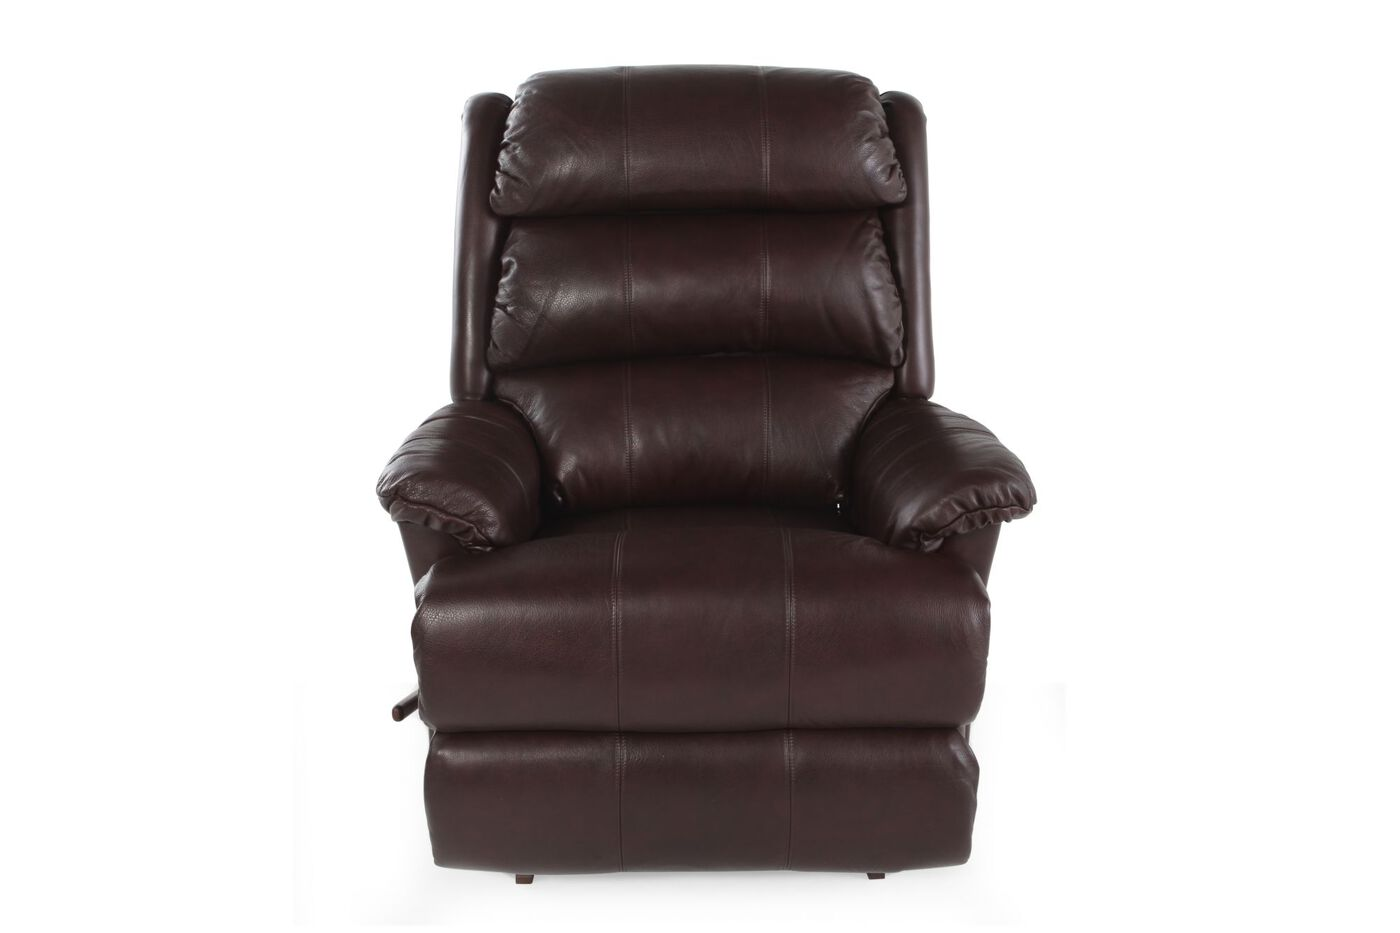 37 5 Quot Leather Rocker Recliner In Chestnut Mathis